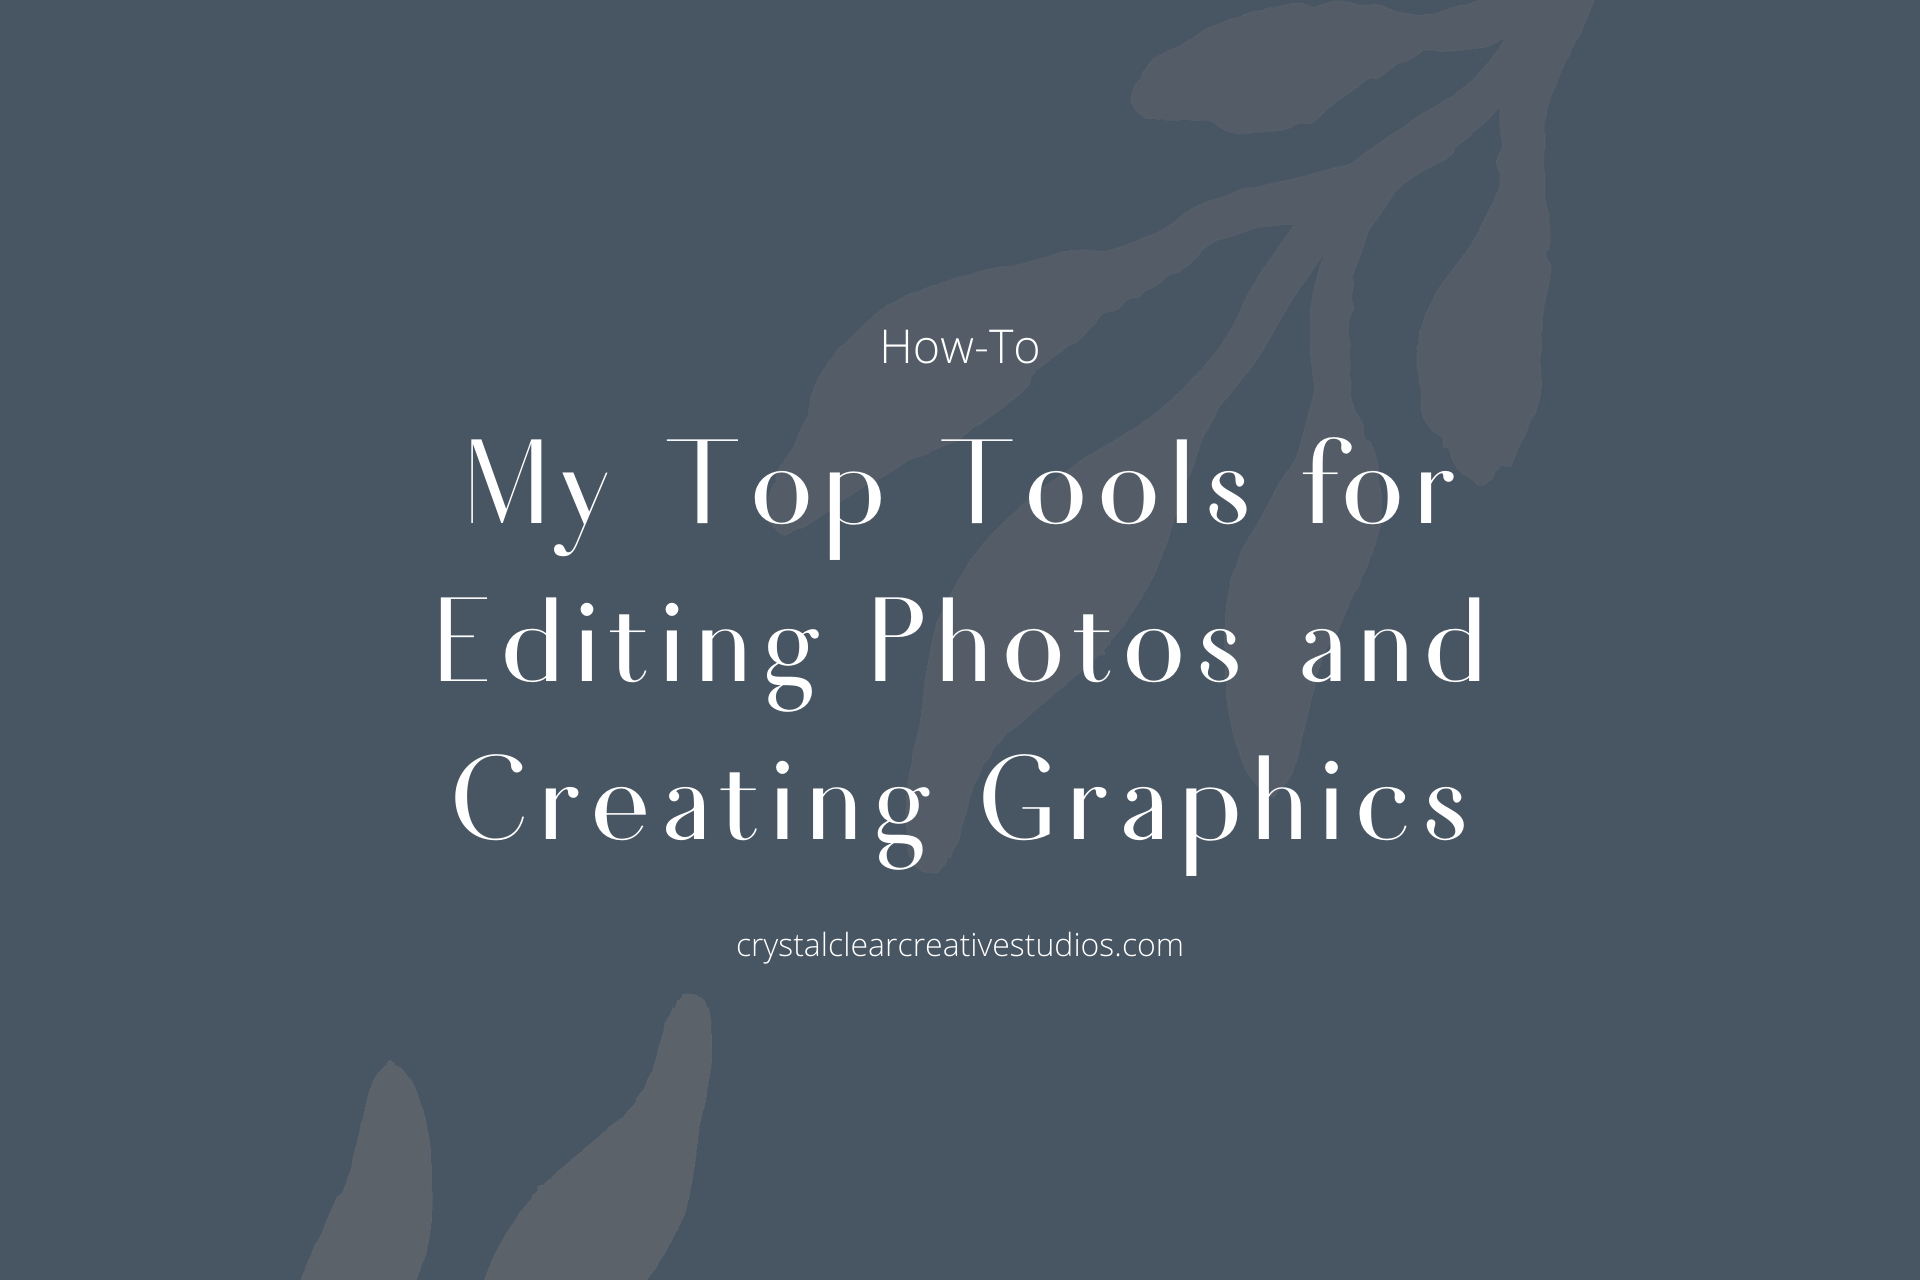 My Top Tools for Editing Photos and Creating Graphics